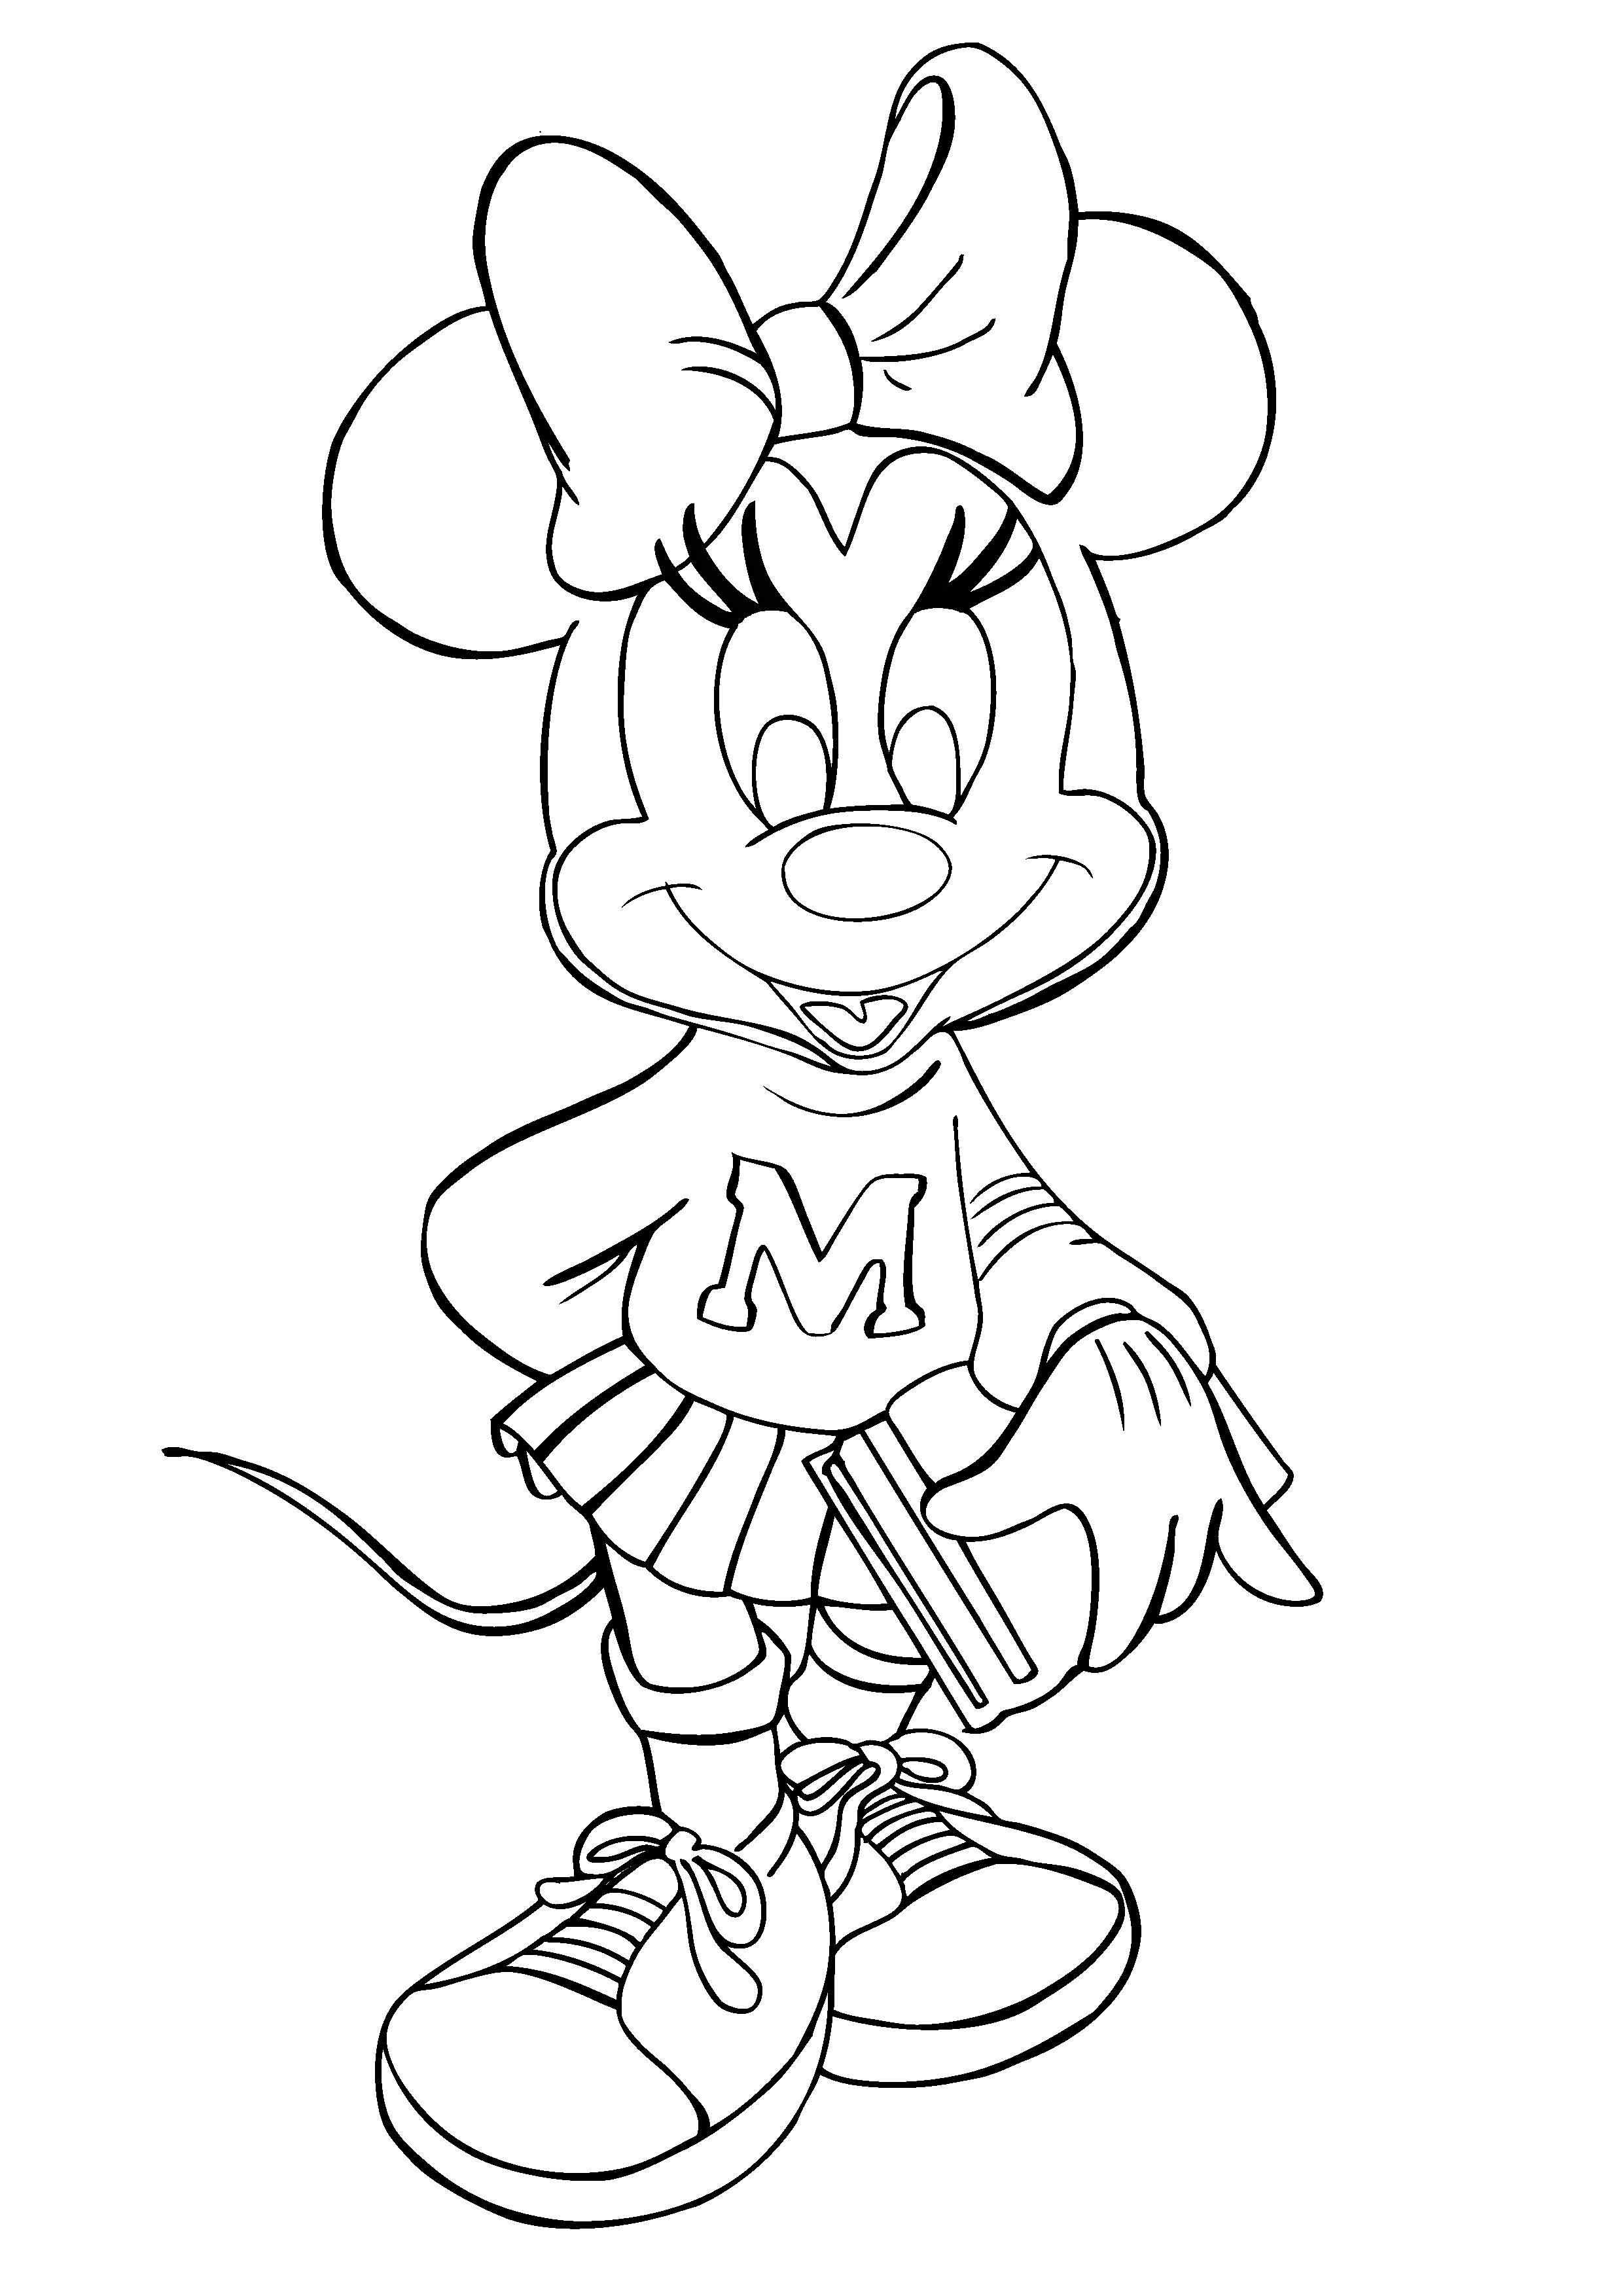 2480x3508 Minnie Mouse Coloring Pages » Coloring Pages Kids